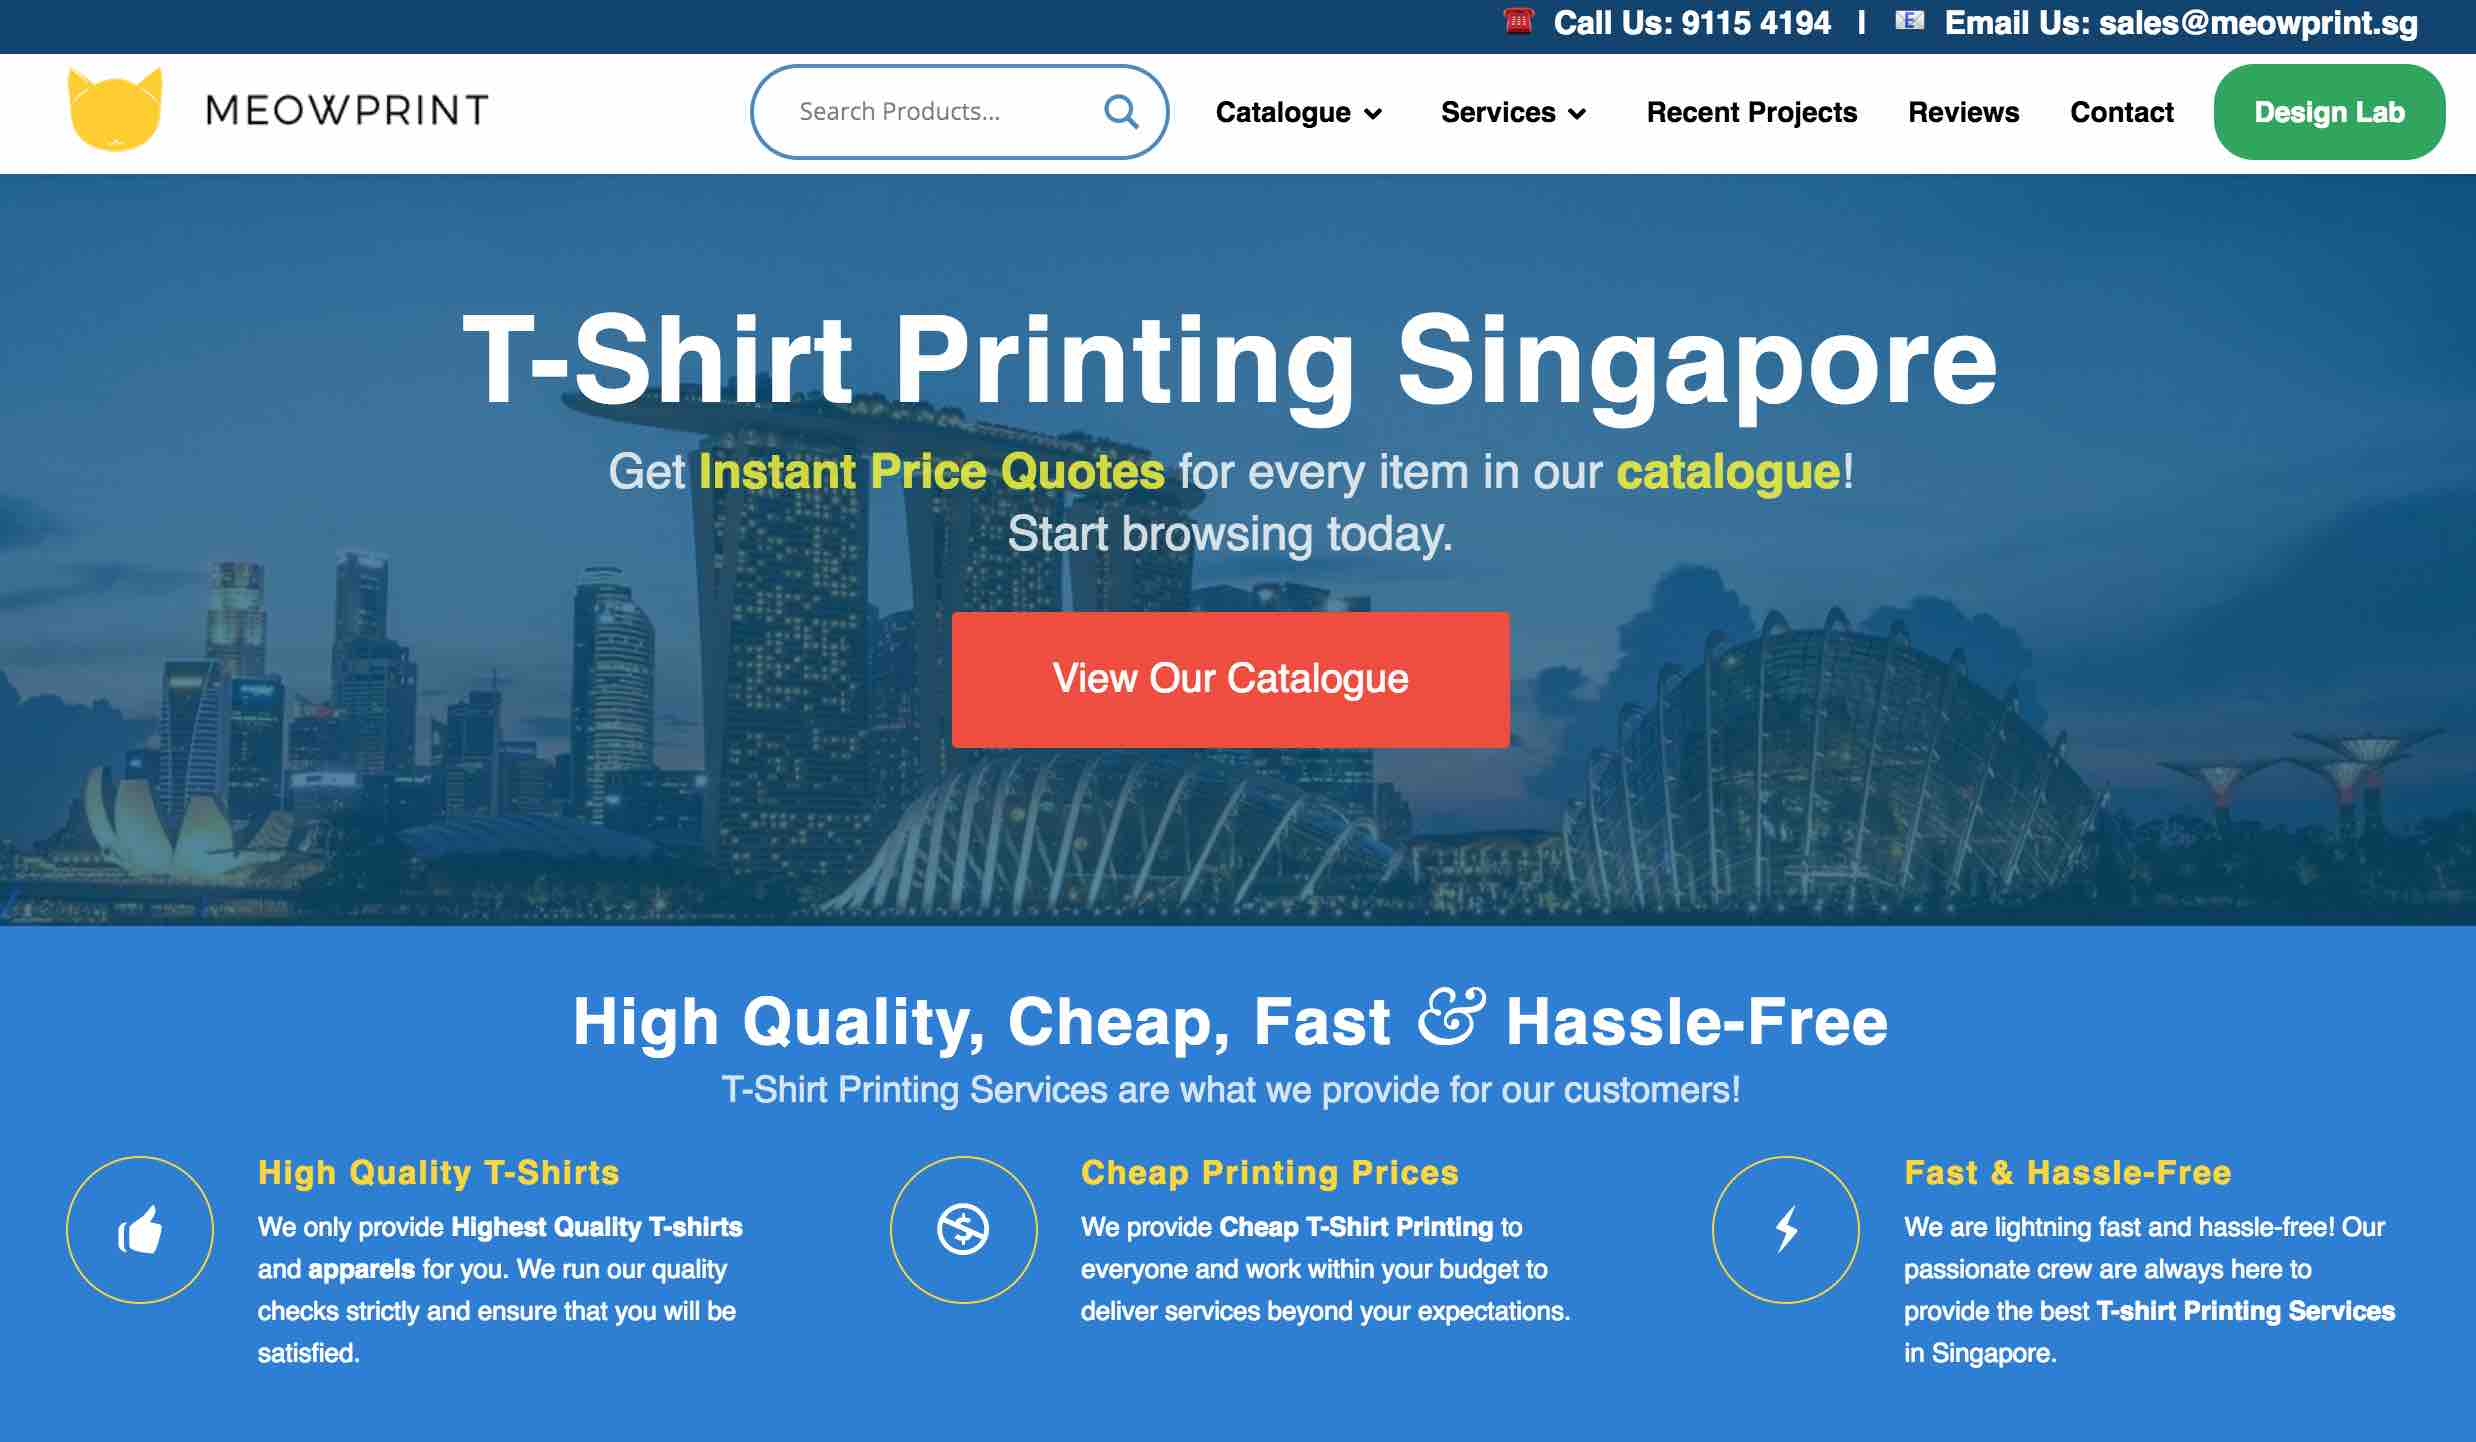 08d8751a If you need T-Shirt printing services, you can approach the leading T-Shirt  Printer, MEOWPRINT, at their website here: meowprint.sg